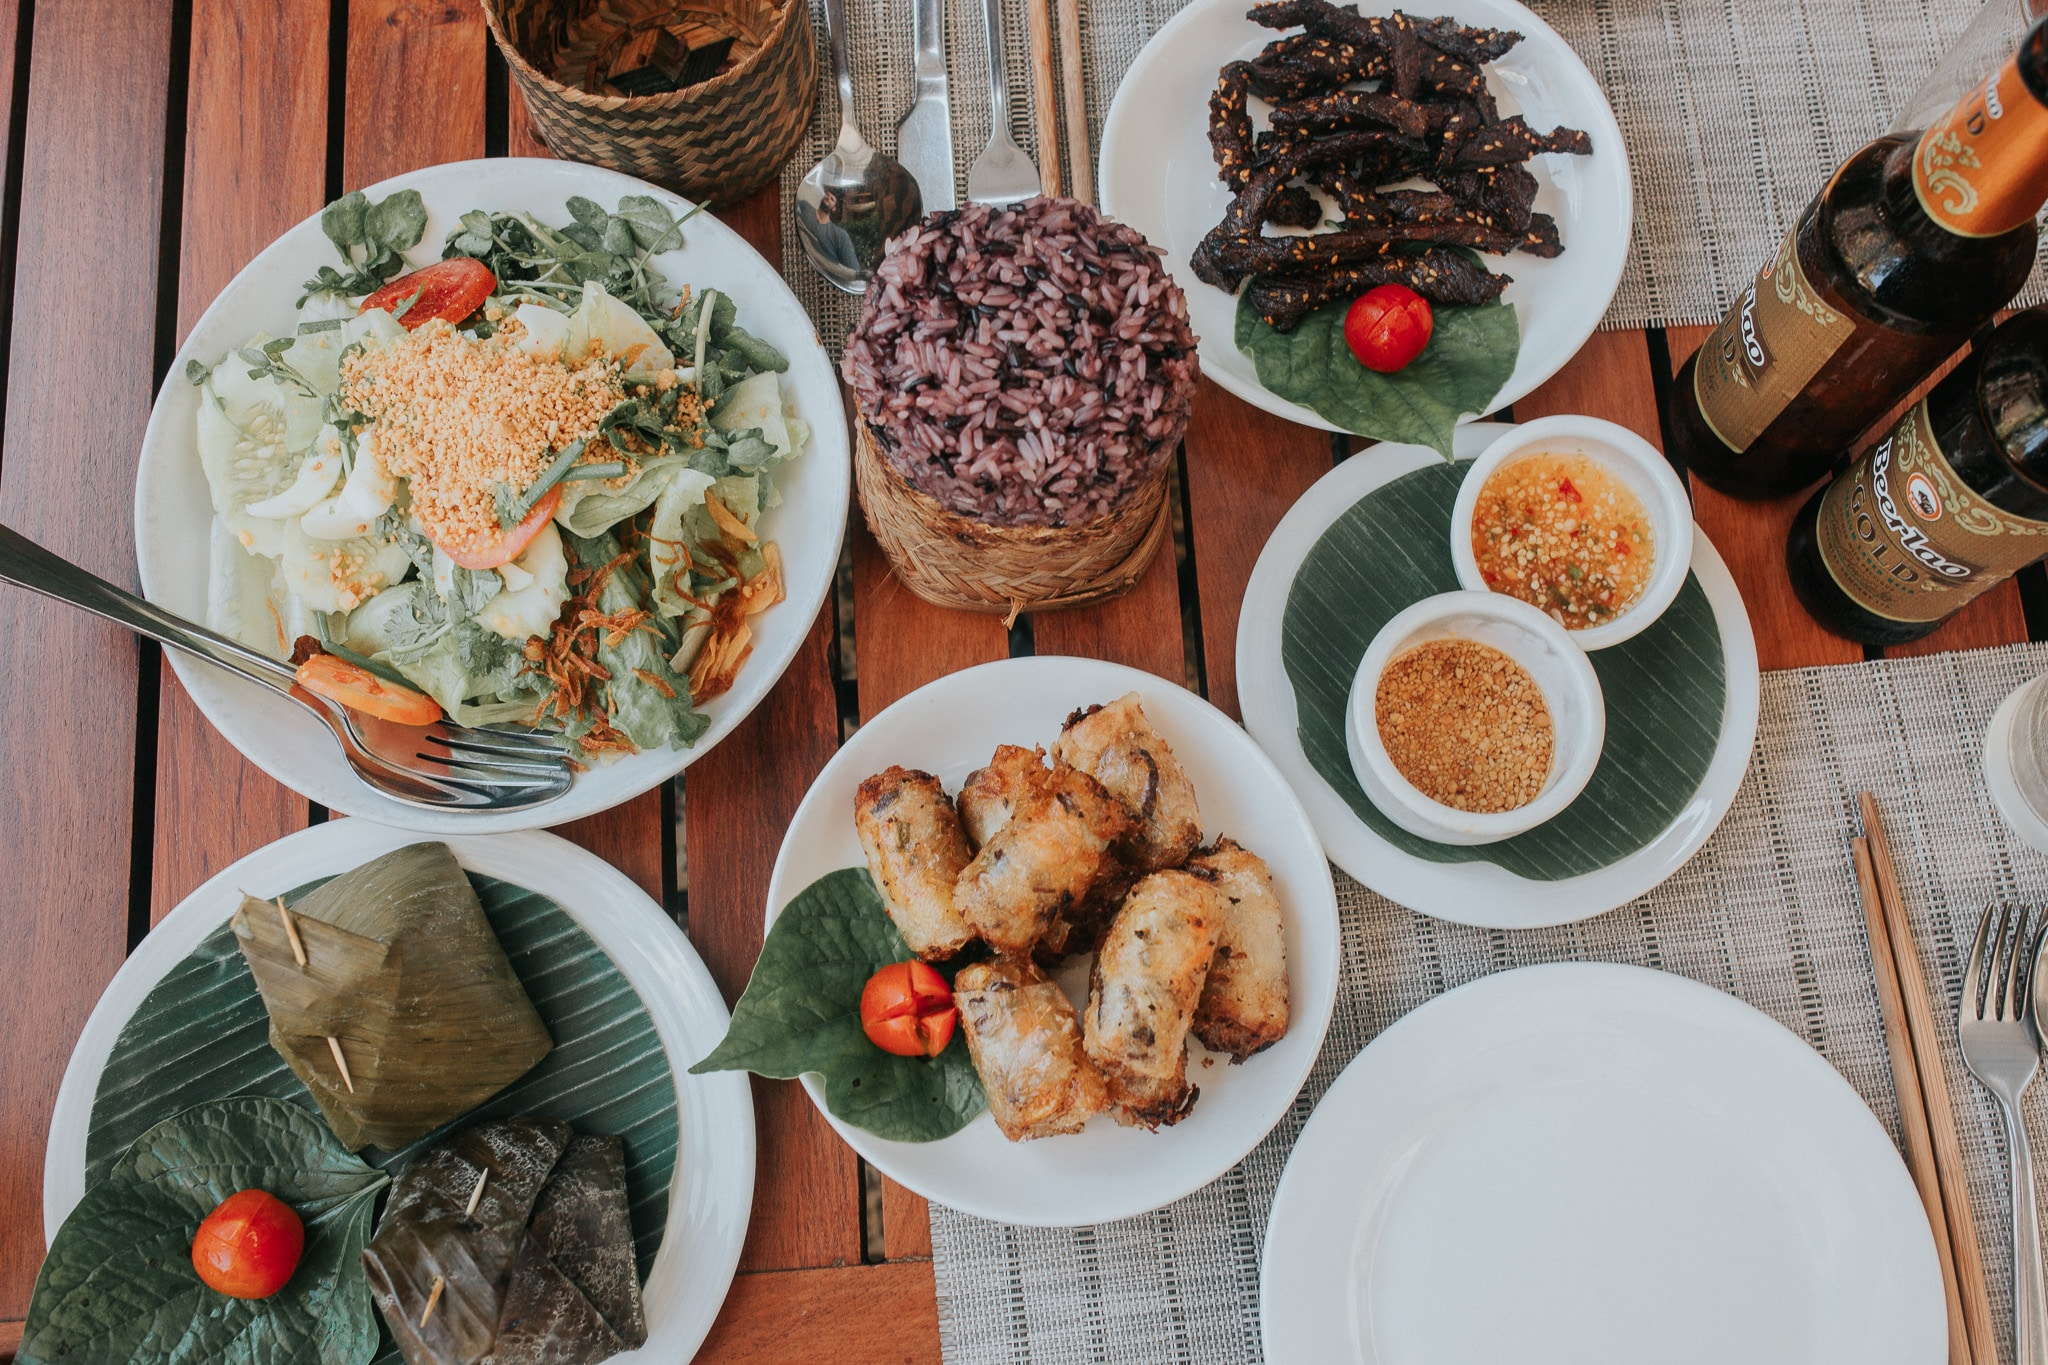 One week in Laos - Luang Prabang - Food feast at Coconut Garden